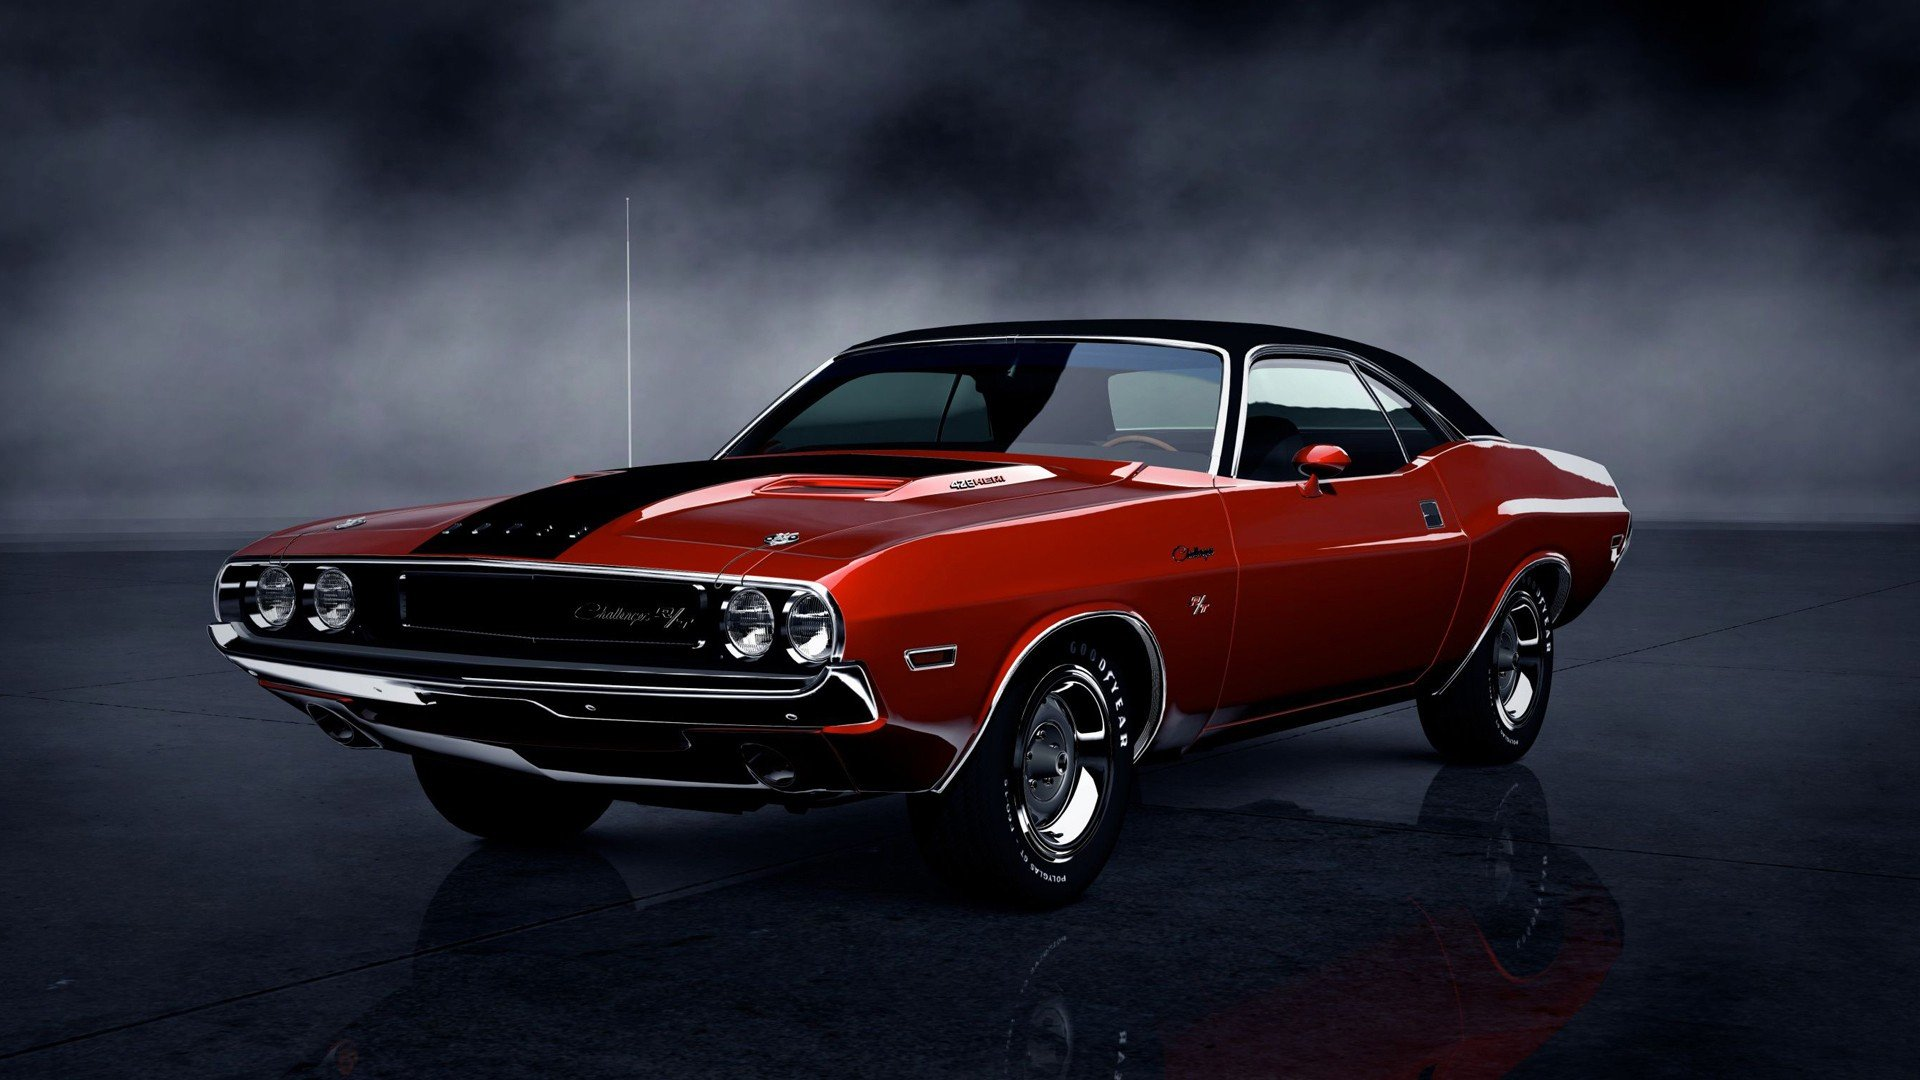 Dodge Challenger RT Wallpapers and Background Images   stmednet 1920x1080